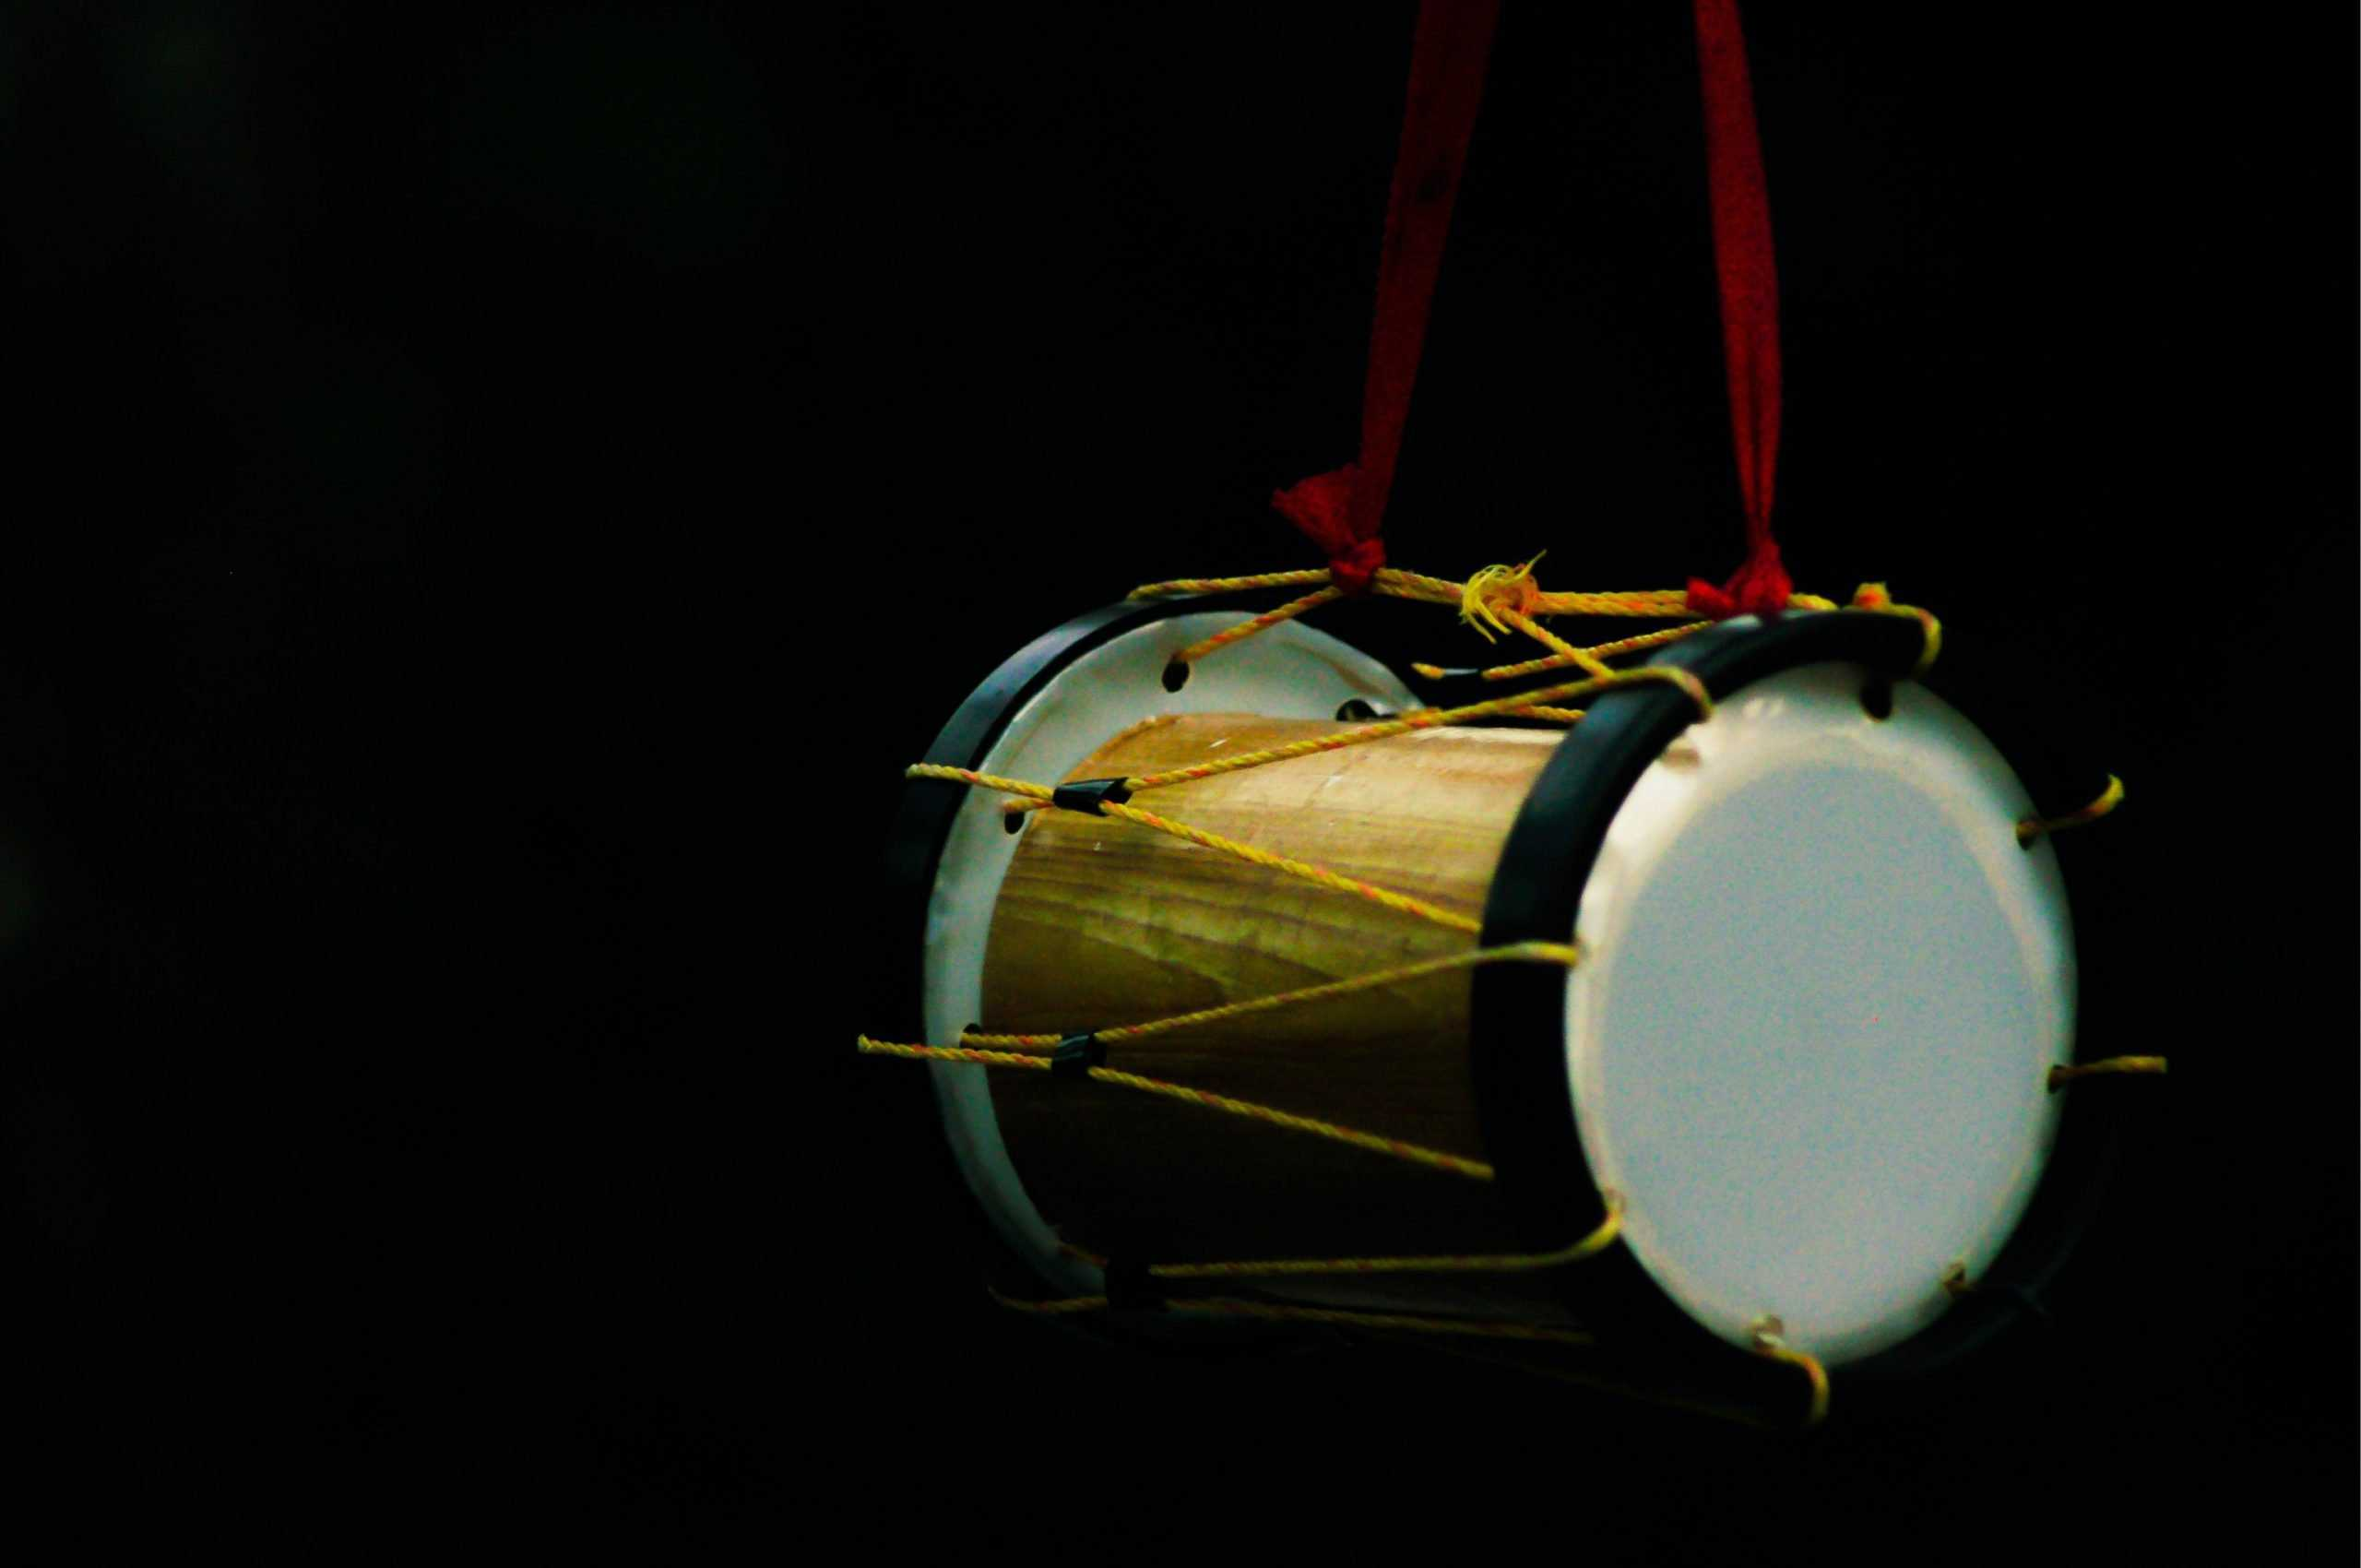 white and brown drum with red strap